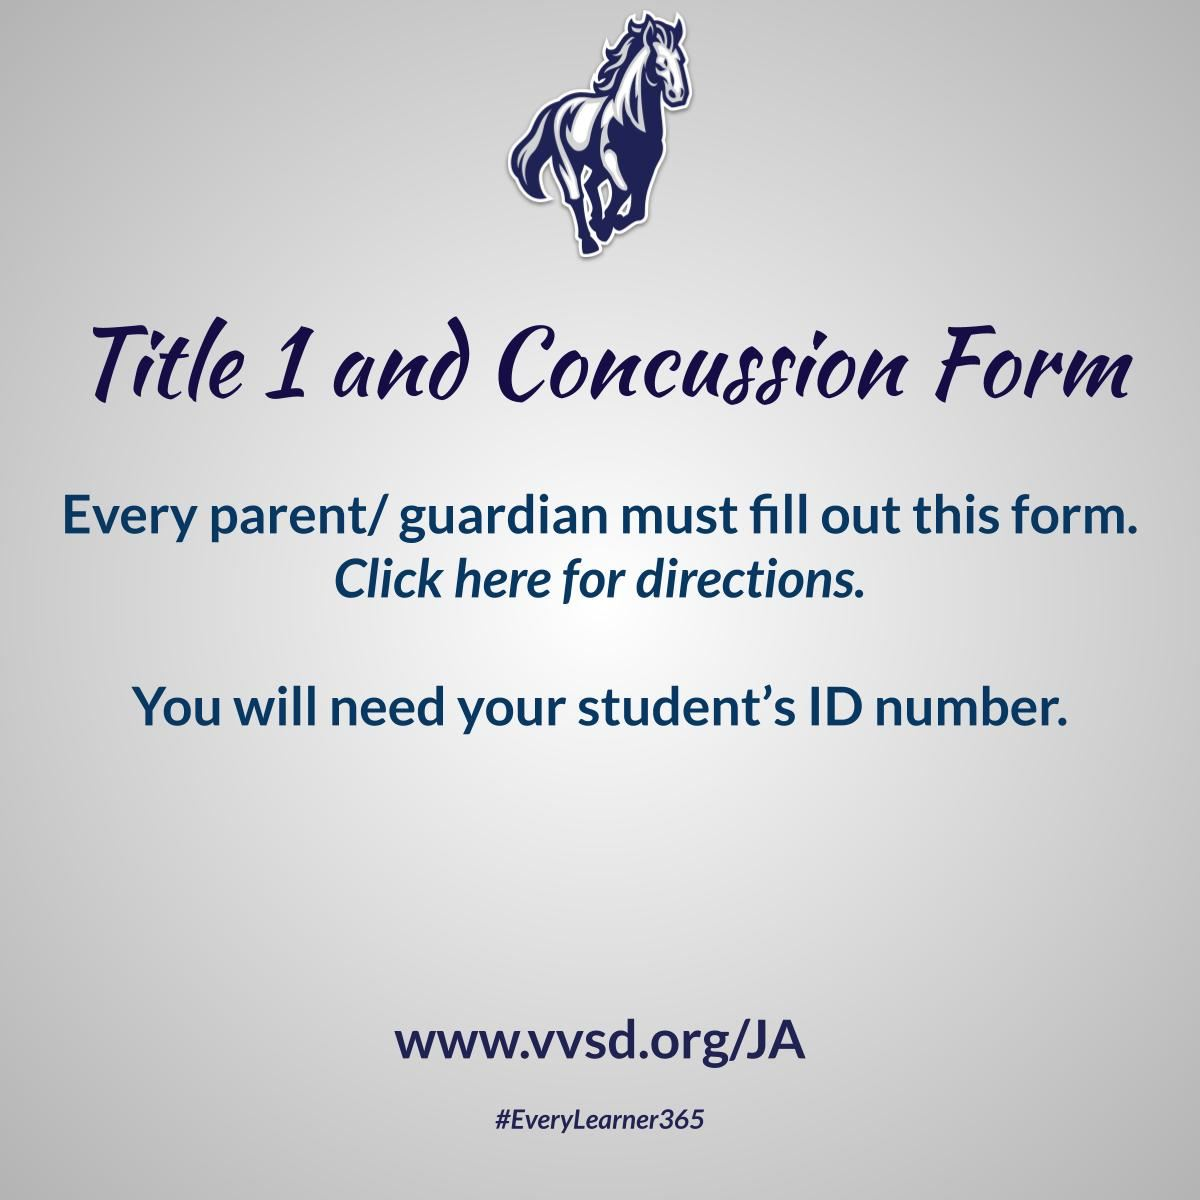 Title 1 and Concussion Form